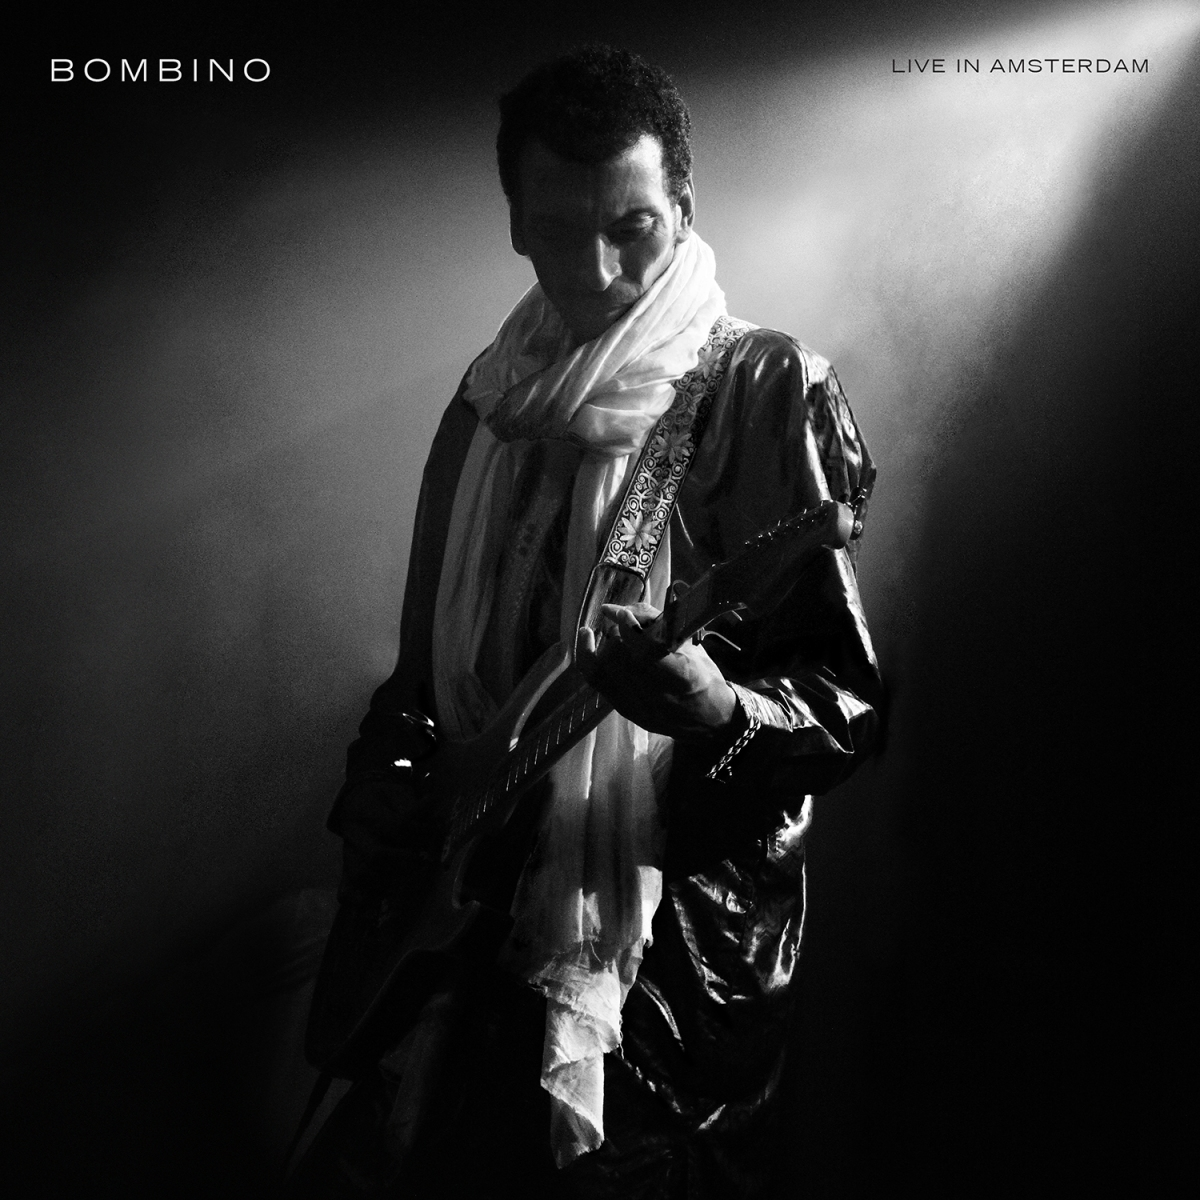 Tuareggae; Bombino is the African Hendrix